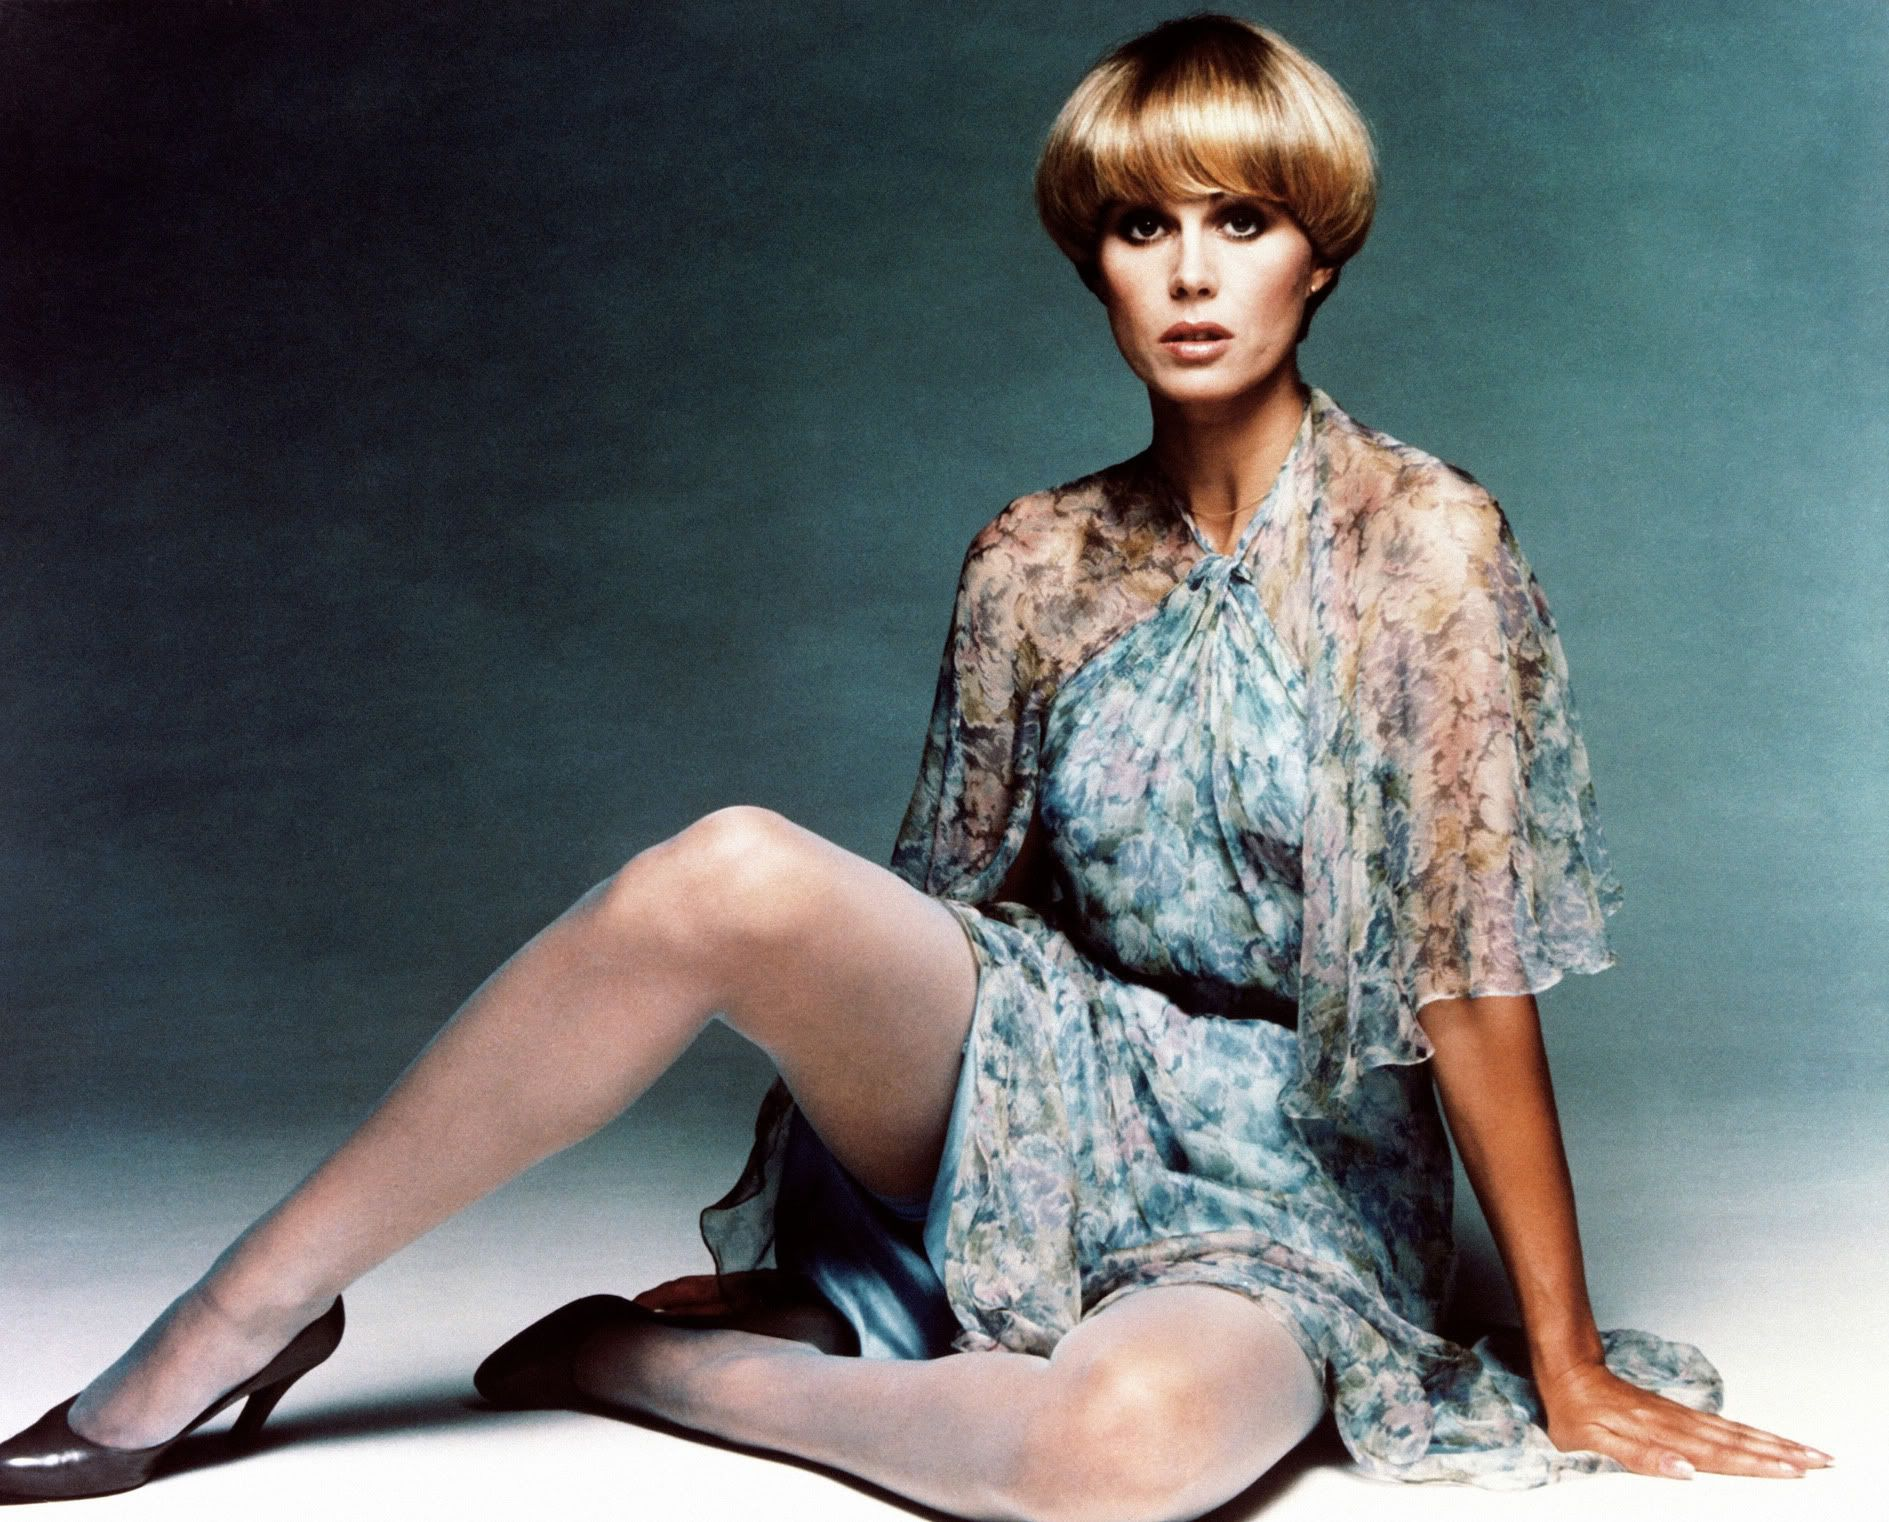 Purdey | The New Avengers 70's TV Show | Pinterest ...